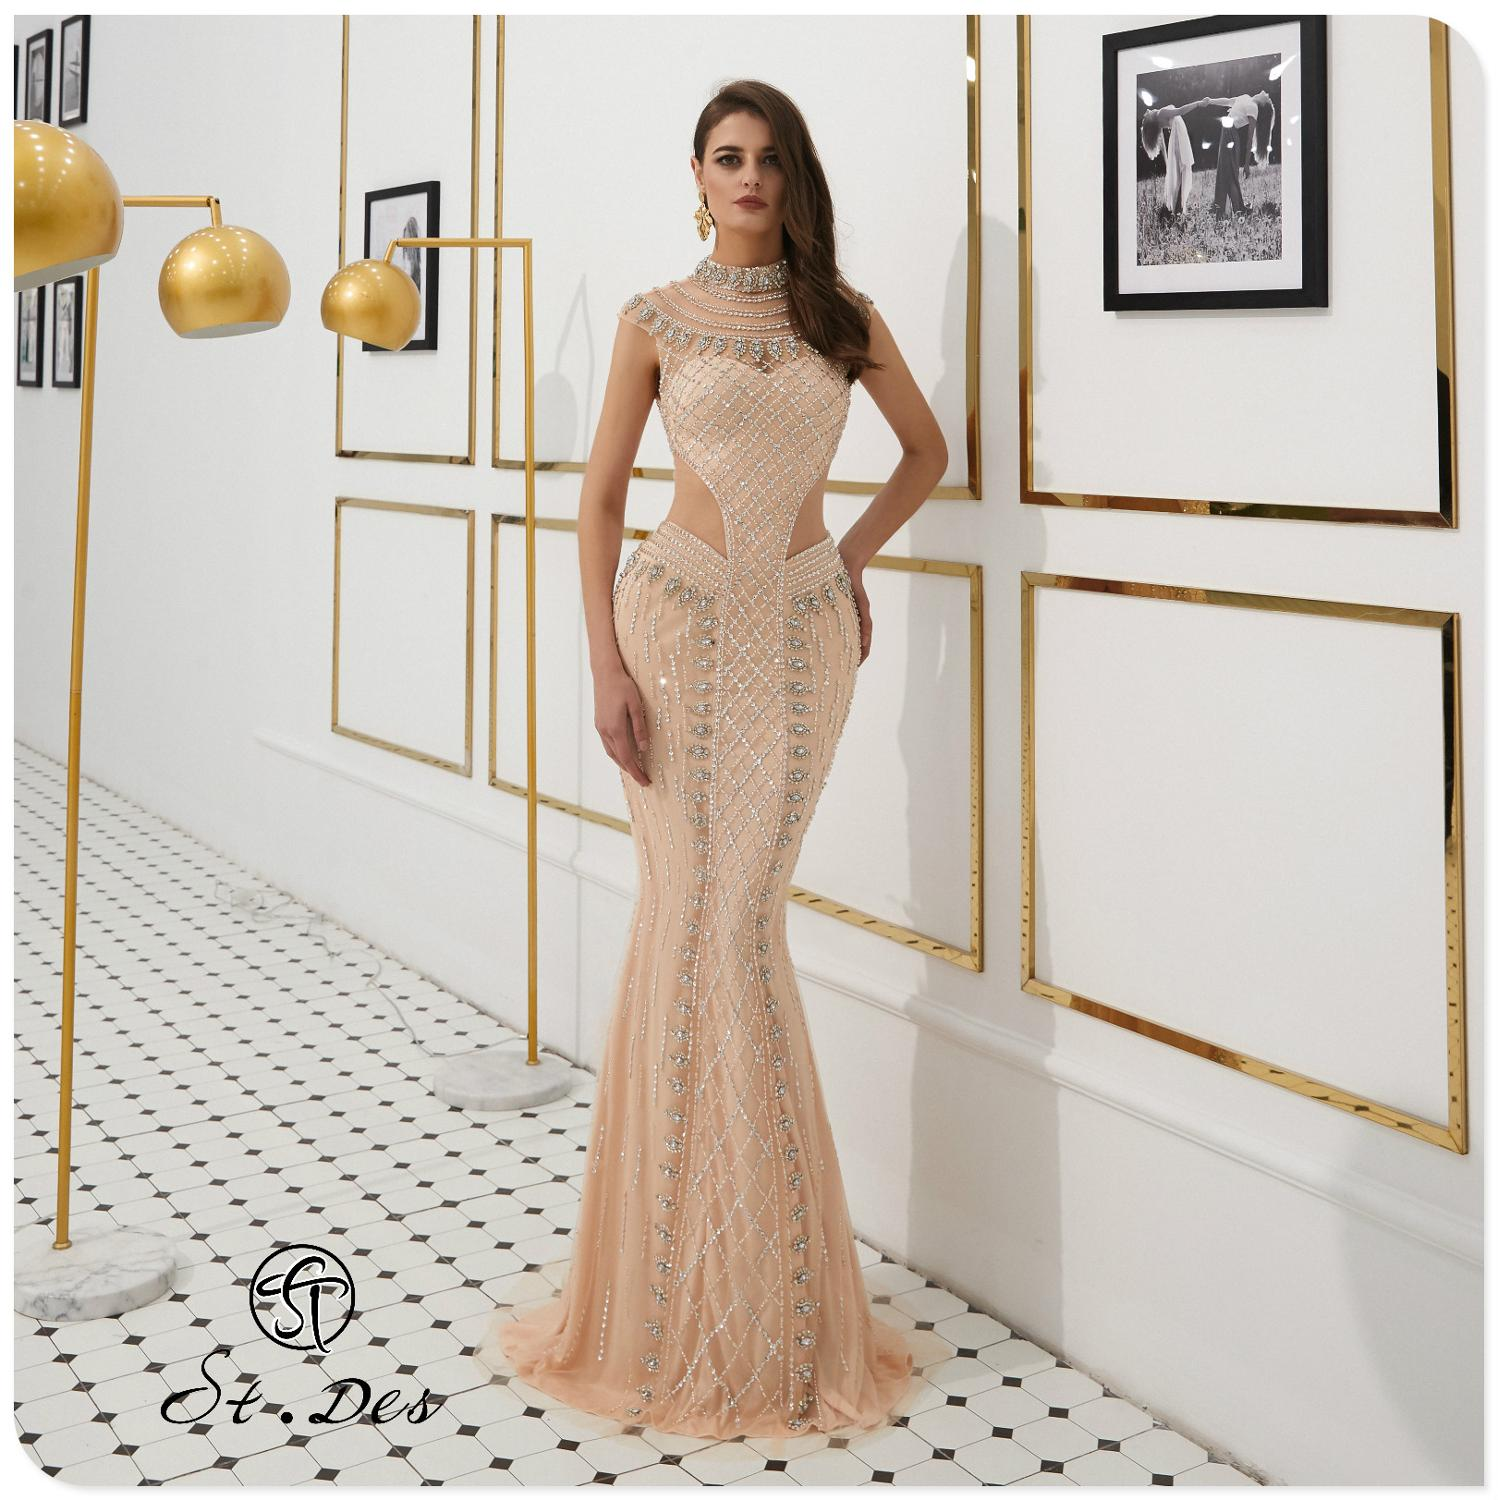 NEW 2020 St.Des Mermaid Round Neck Russian Champagne Beading Sleeveless Designer Floor Length Evening Dress Party Dress